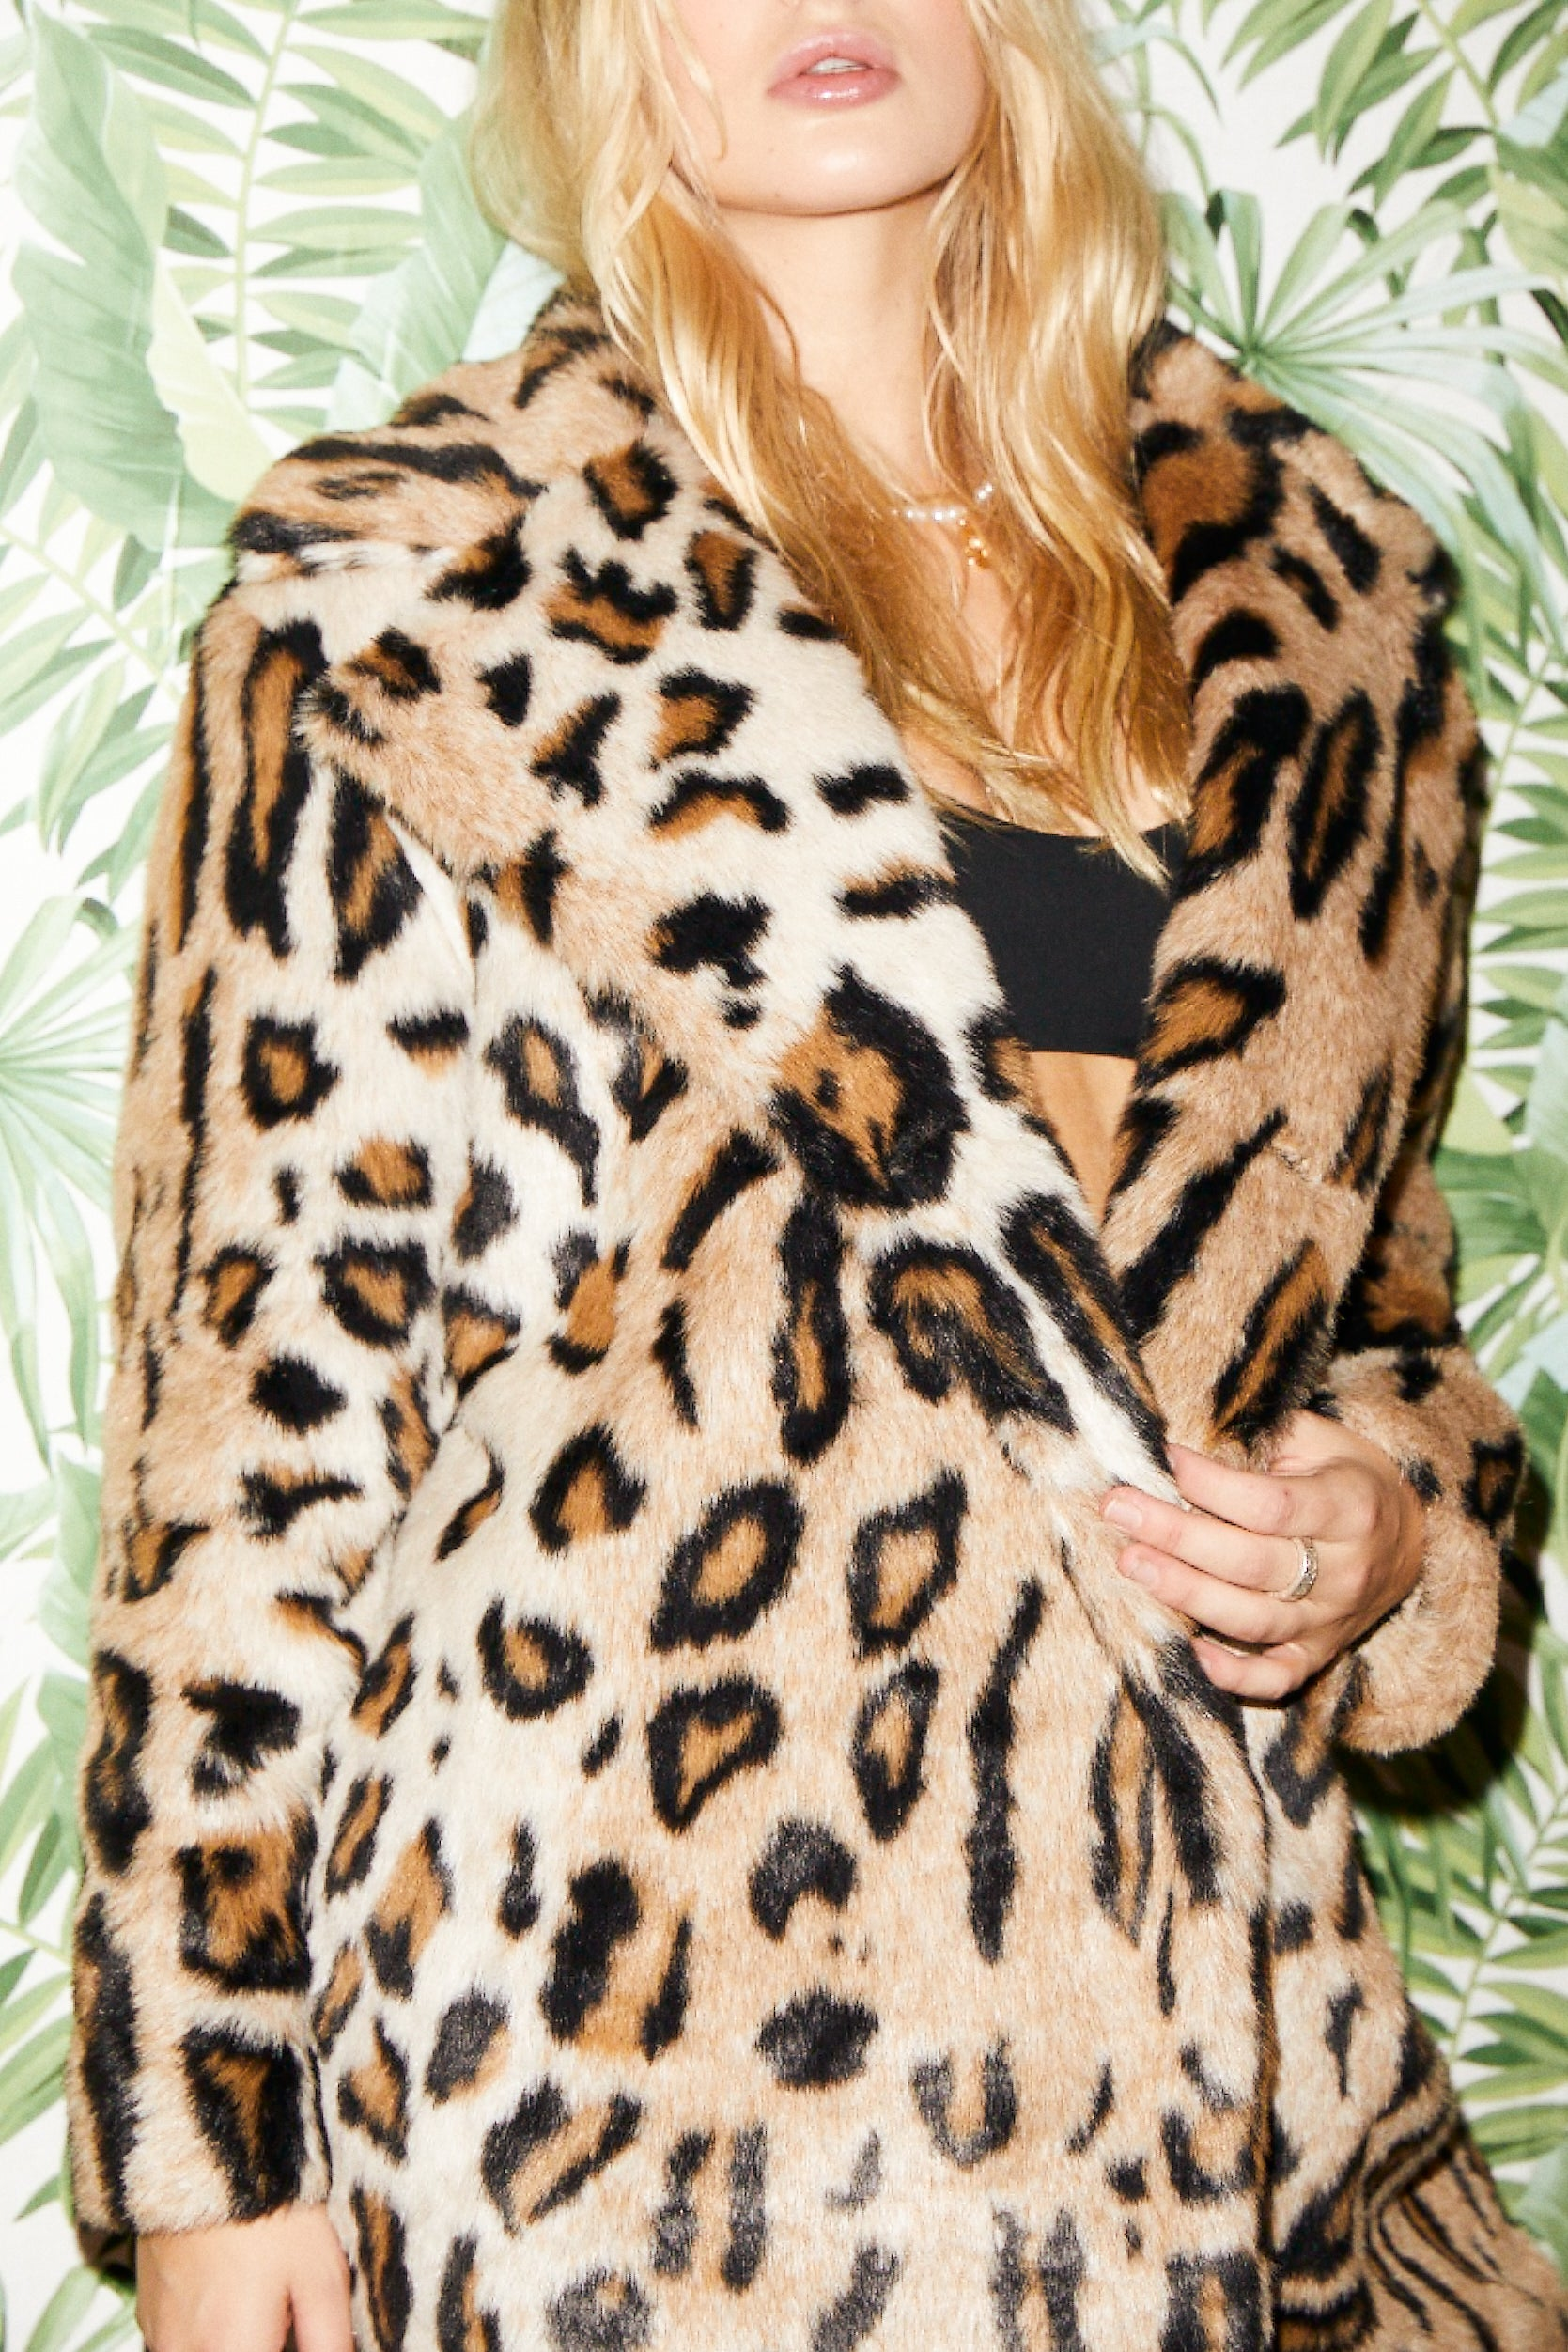 SHACI Antibes faux fur long coat with button closure and collar in leopard color print. Comfortable, cozy, breathable, lightweight, fitted, anti-wrinkle, Japanese faux fur fabric.